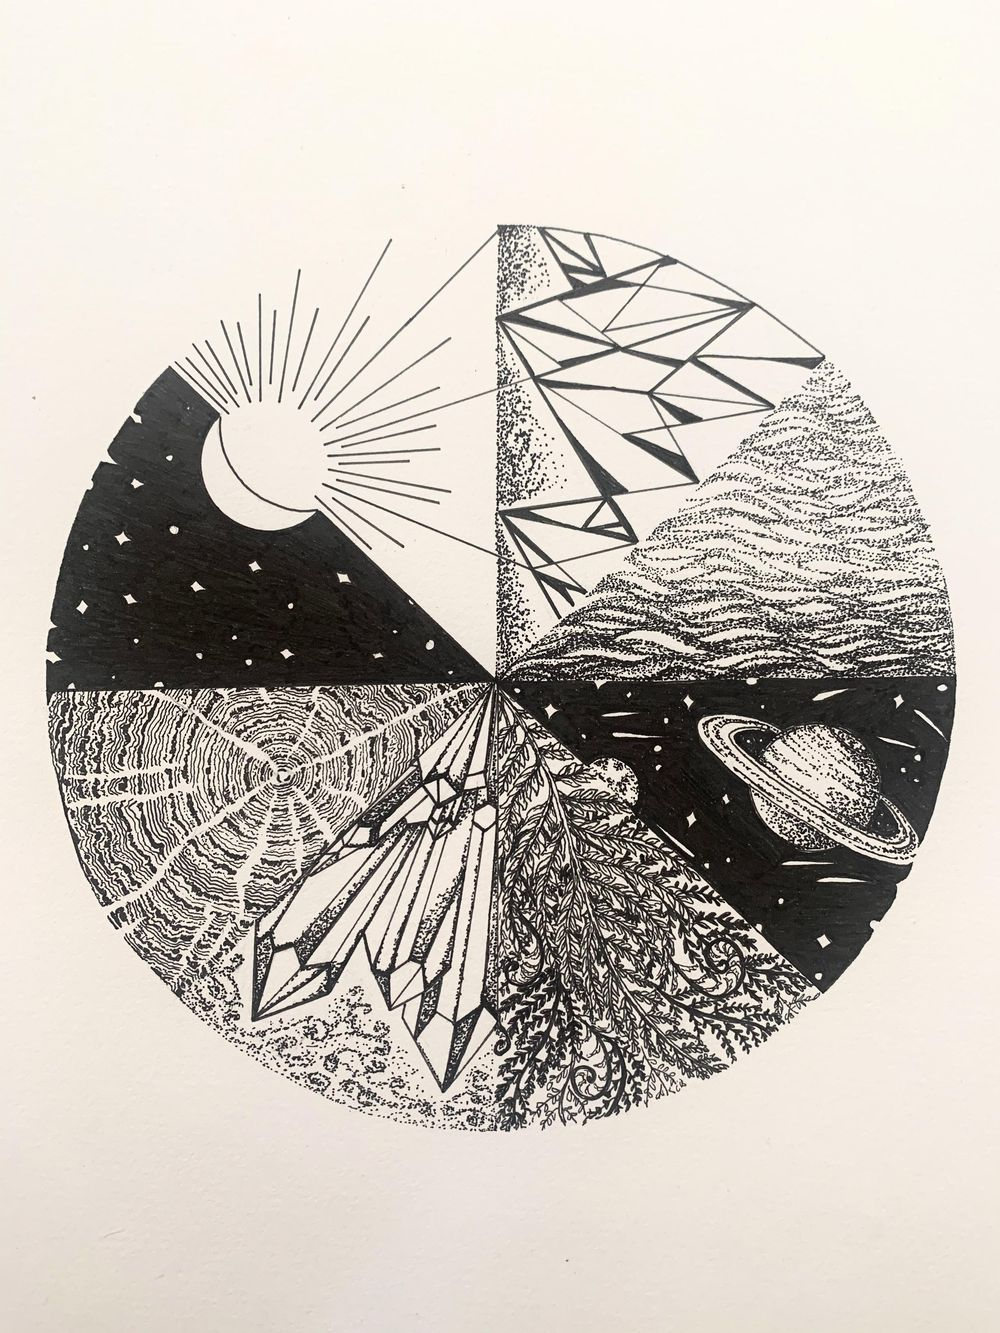 Land, Sky, Water Inspiration - image 1 - student project